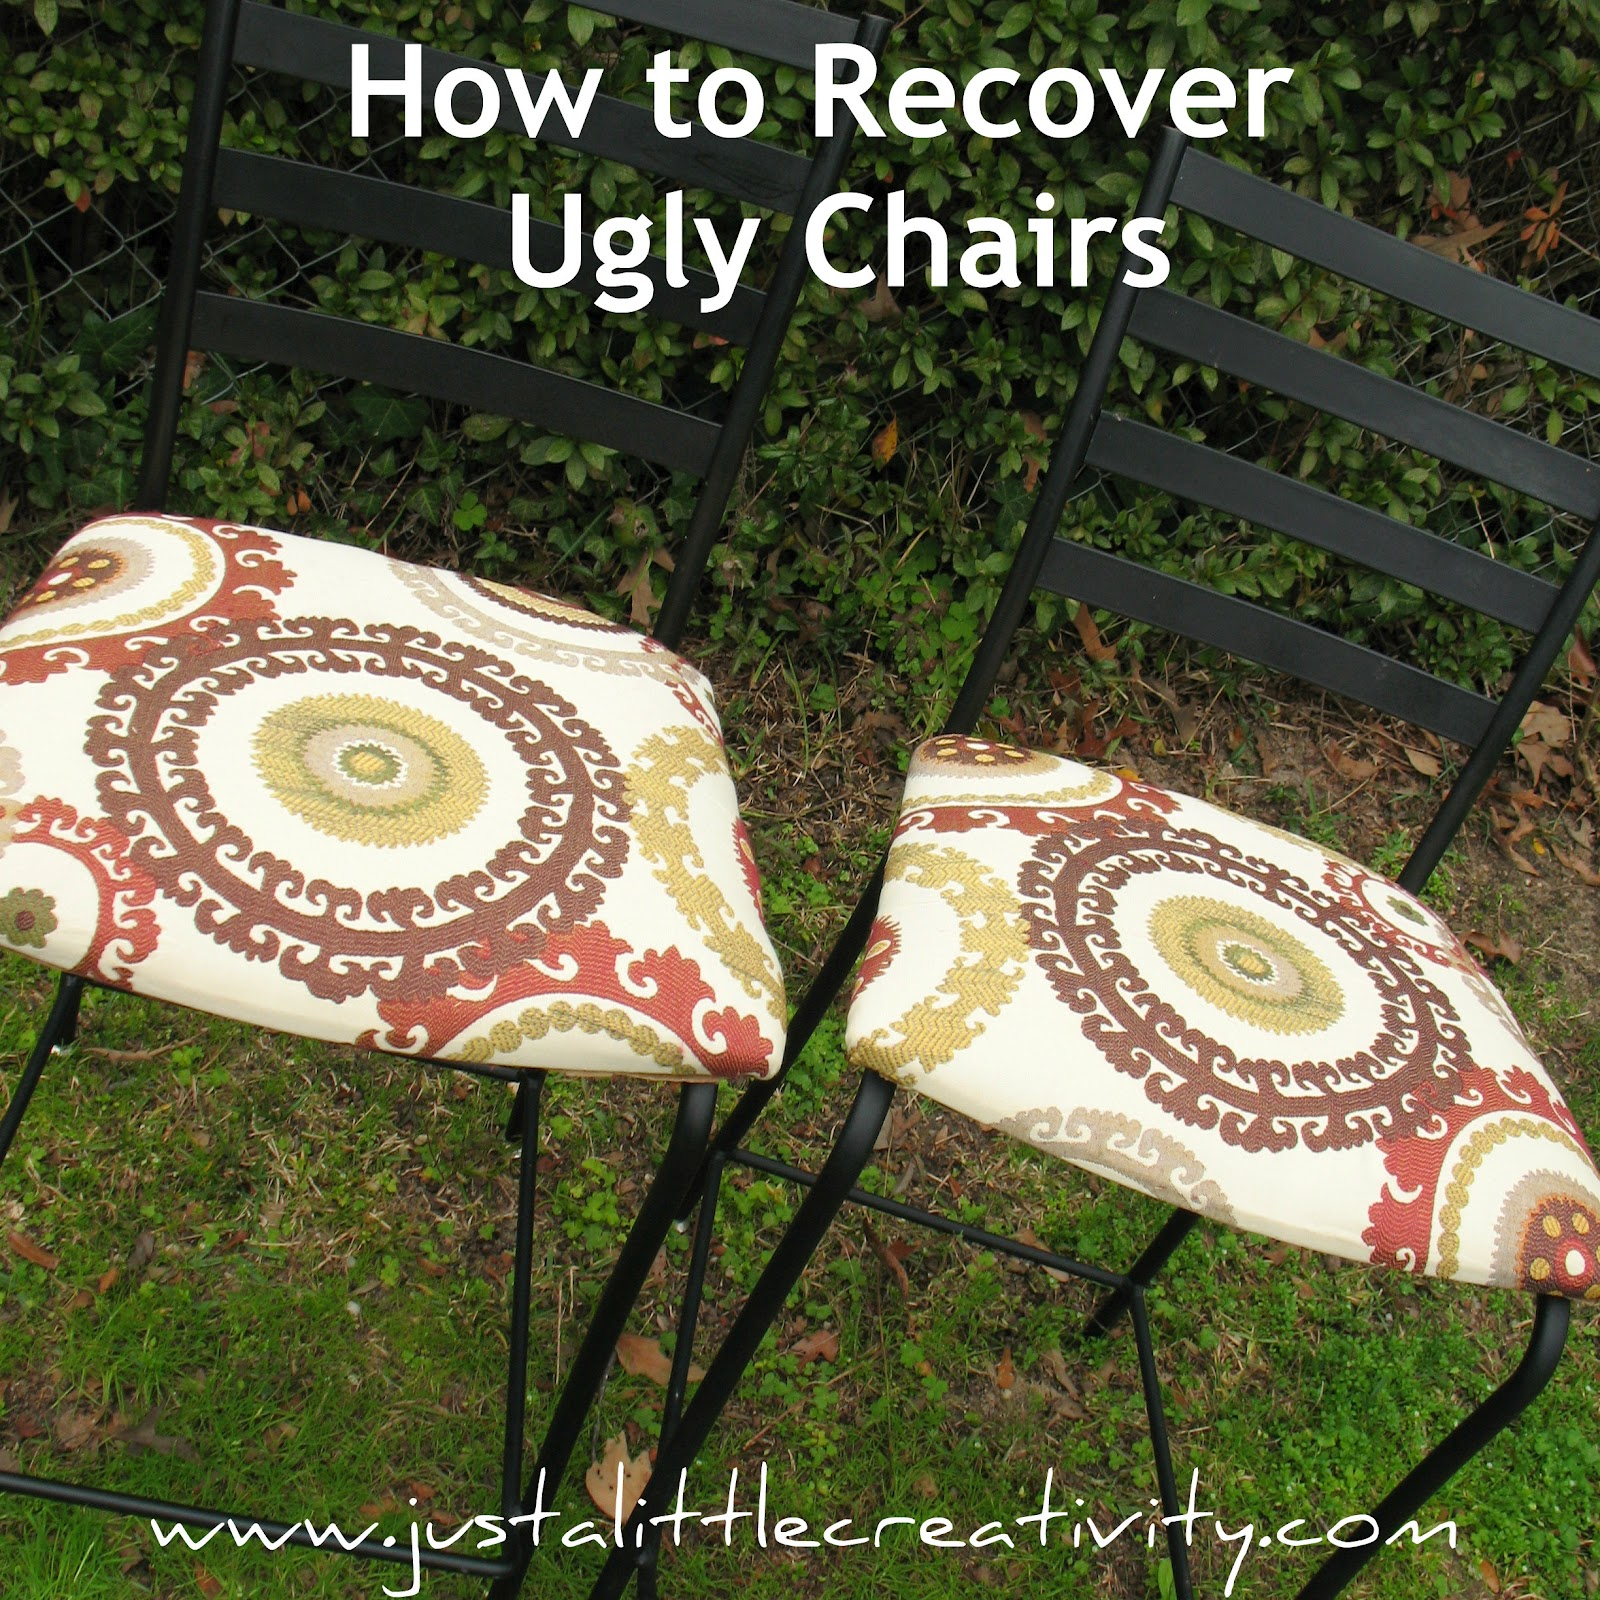 How To Recover Ugly Chairs {Trash To Treasure DIY}